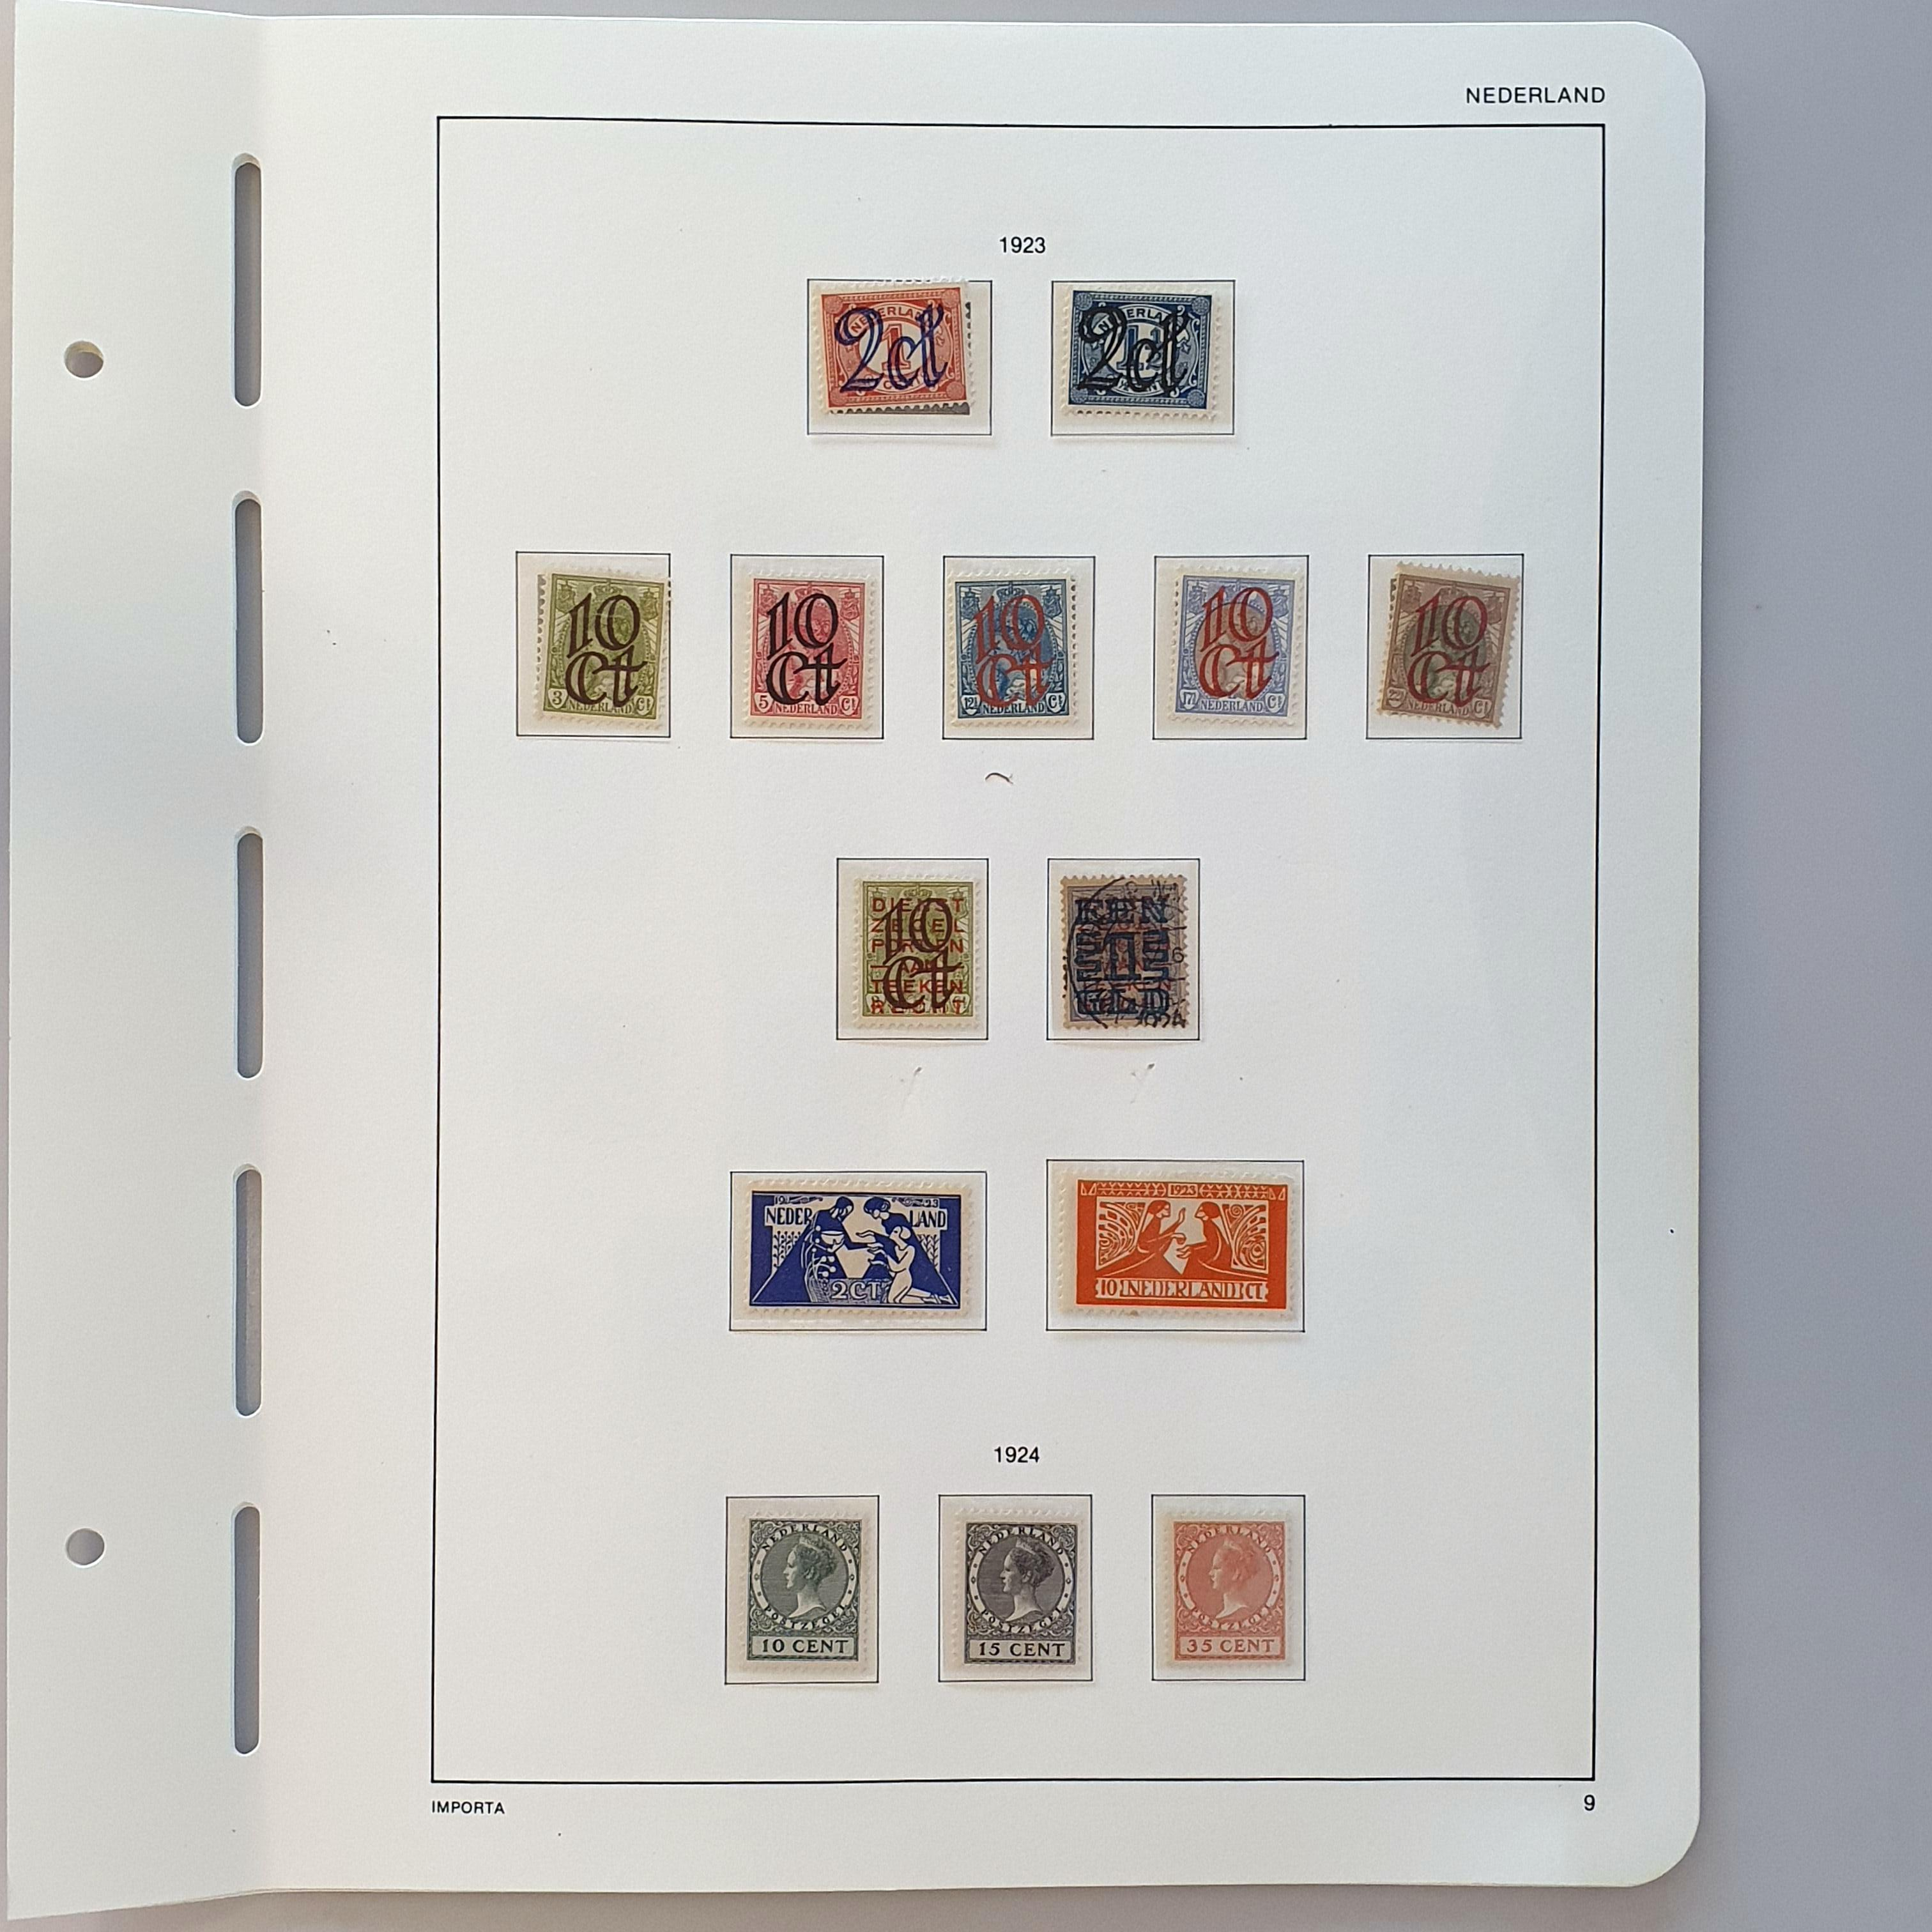 Lot 1618 - Netherlands and former colonies Netherlands -  Corinphila Veilingen Auction 250-253 - Day 2 - Coins, medals, Netherlands and former colonies